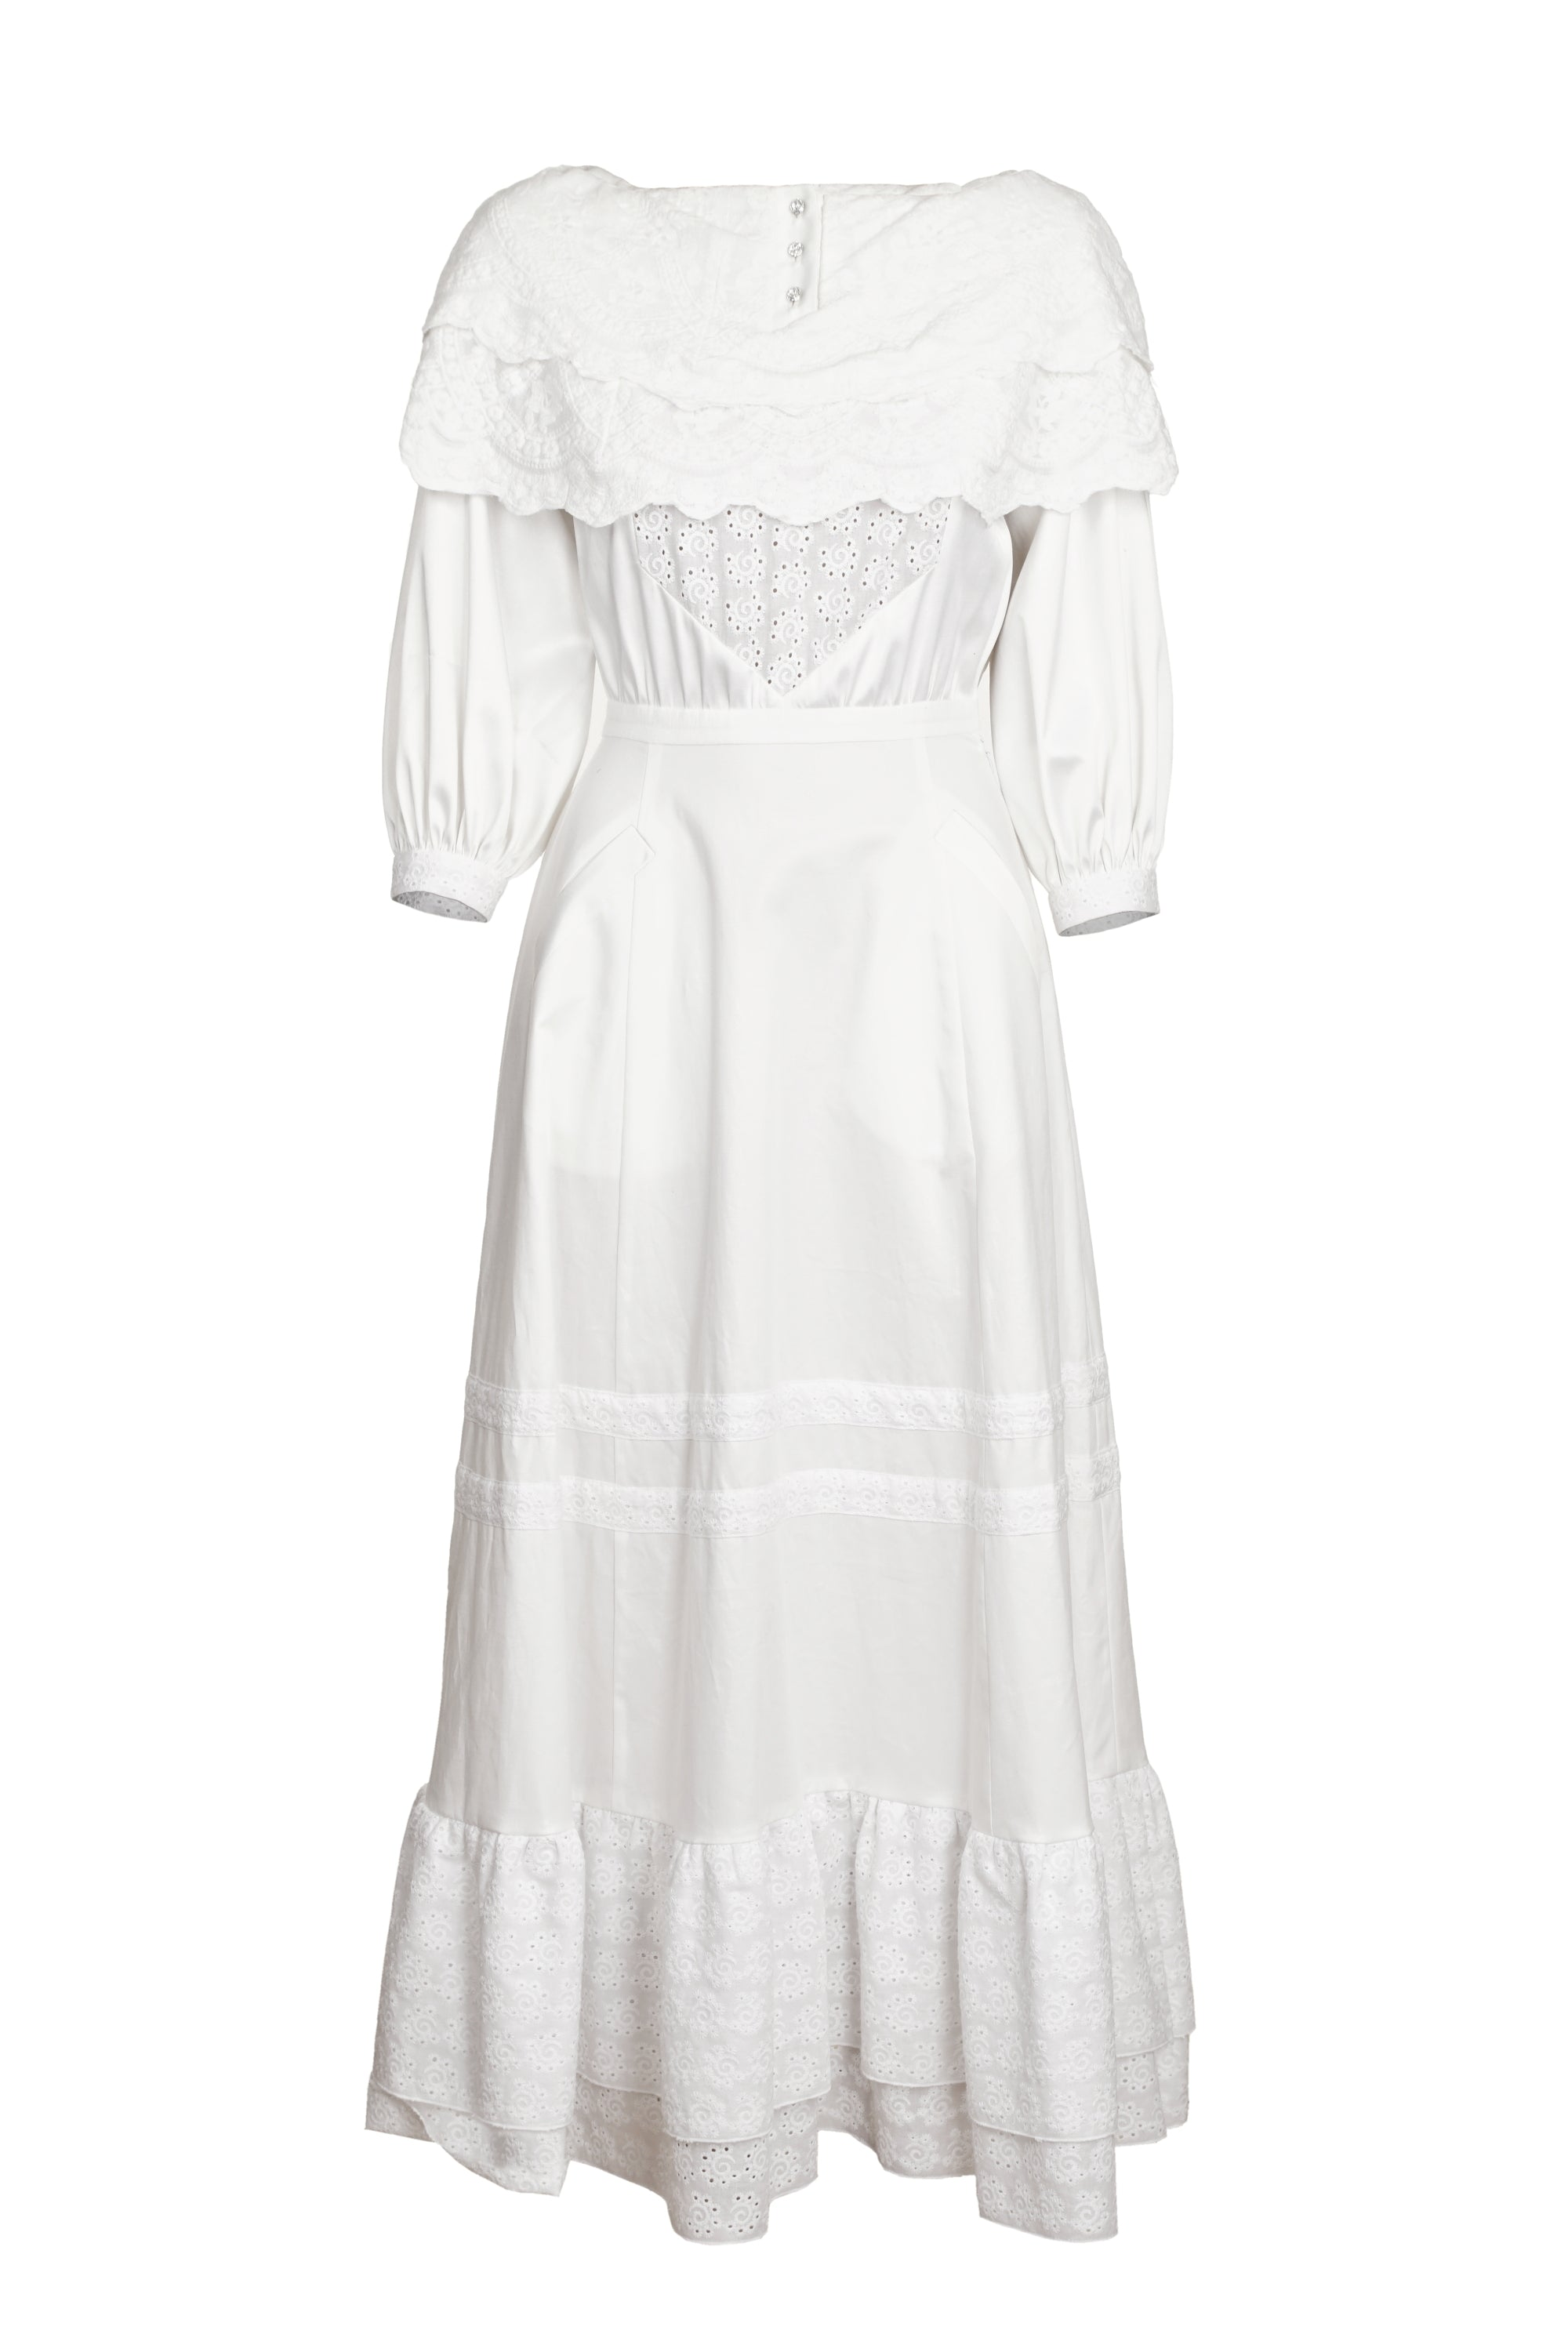 WHITE BOHEMIAN DRESS WITH EMBROIDERY